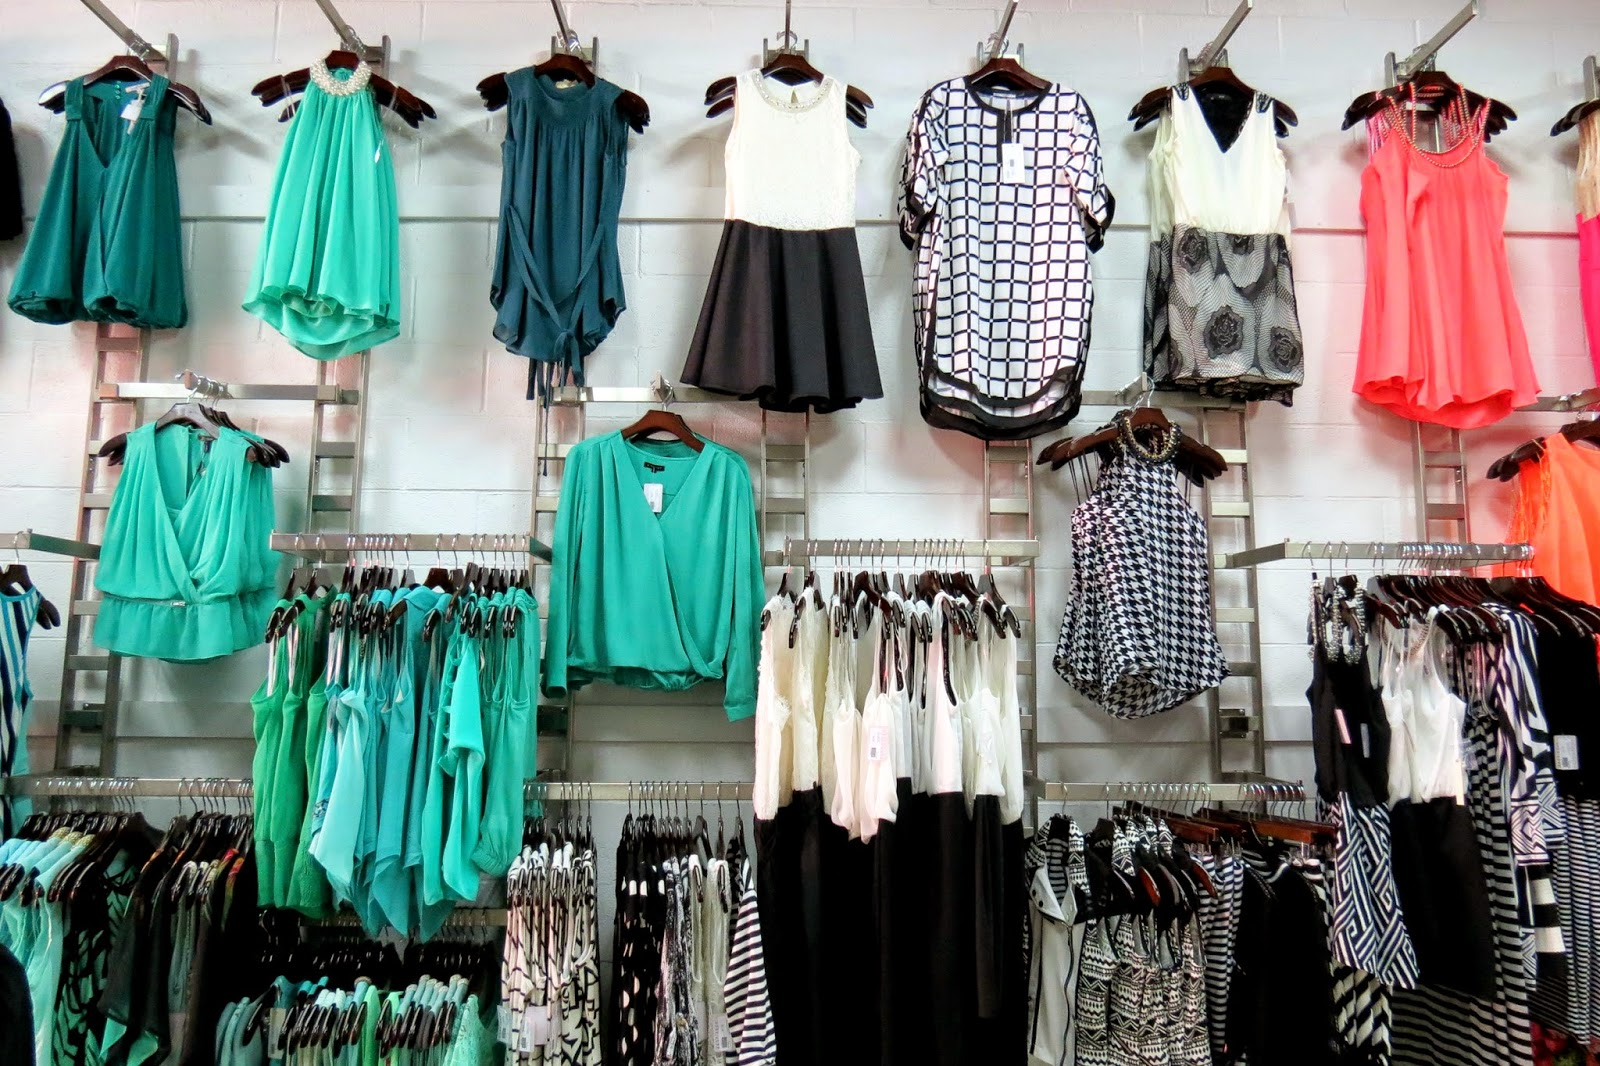 wholesale clothing la - Kids Clothes Zone